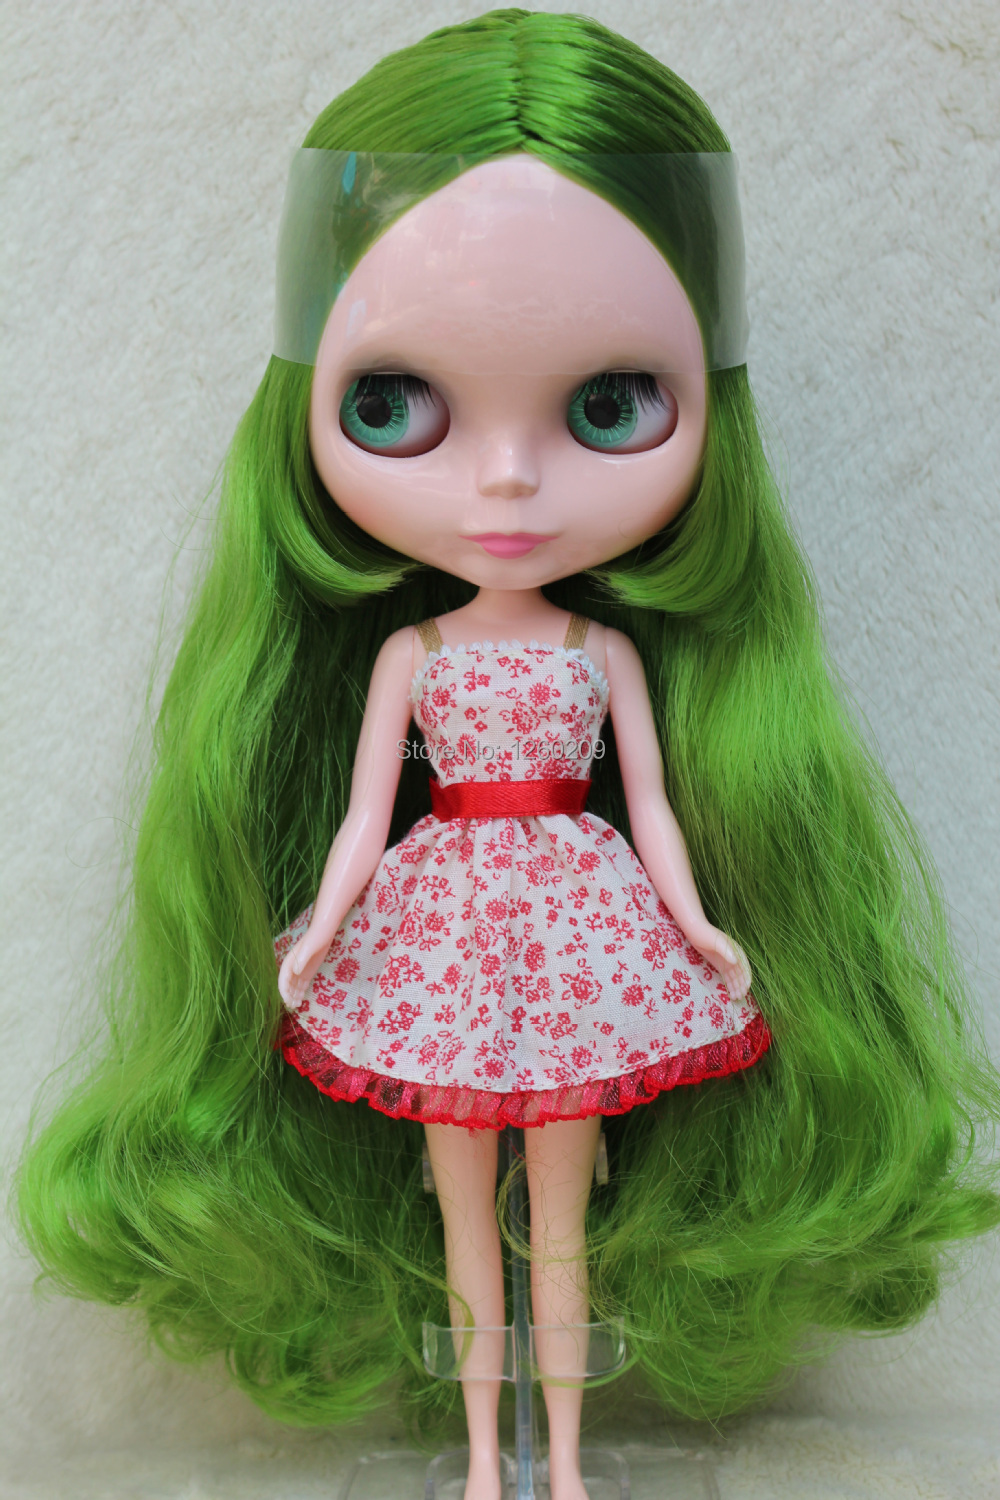 Green Hair Blythedoll Nude Dolls Neo Doll,Blyth Suitable For DIY Change Toy For Girls Gift And Holiday Gifts(S00200)(China (Mainland))